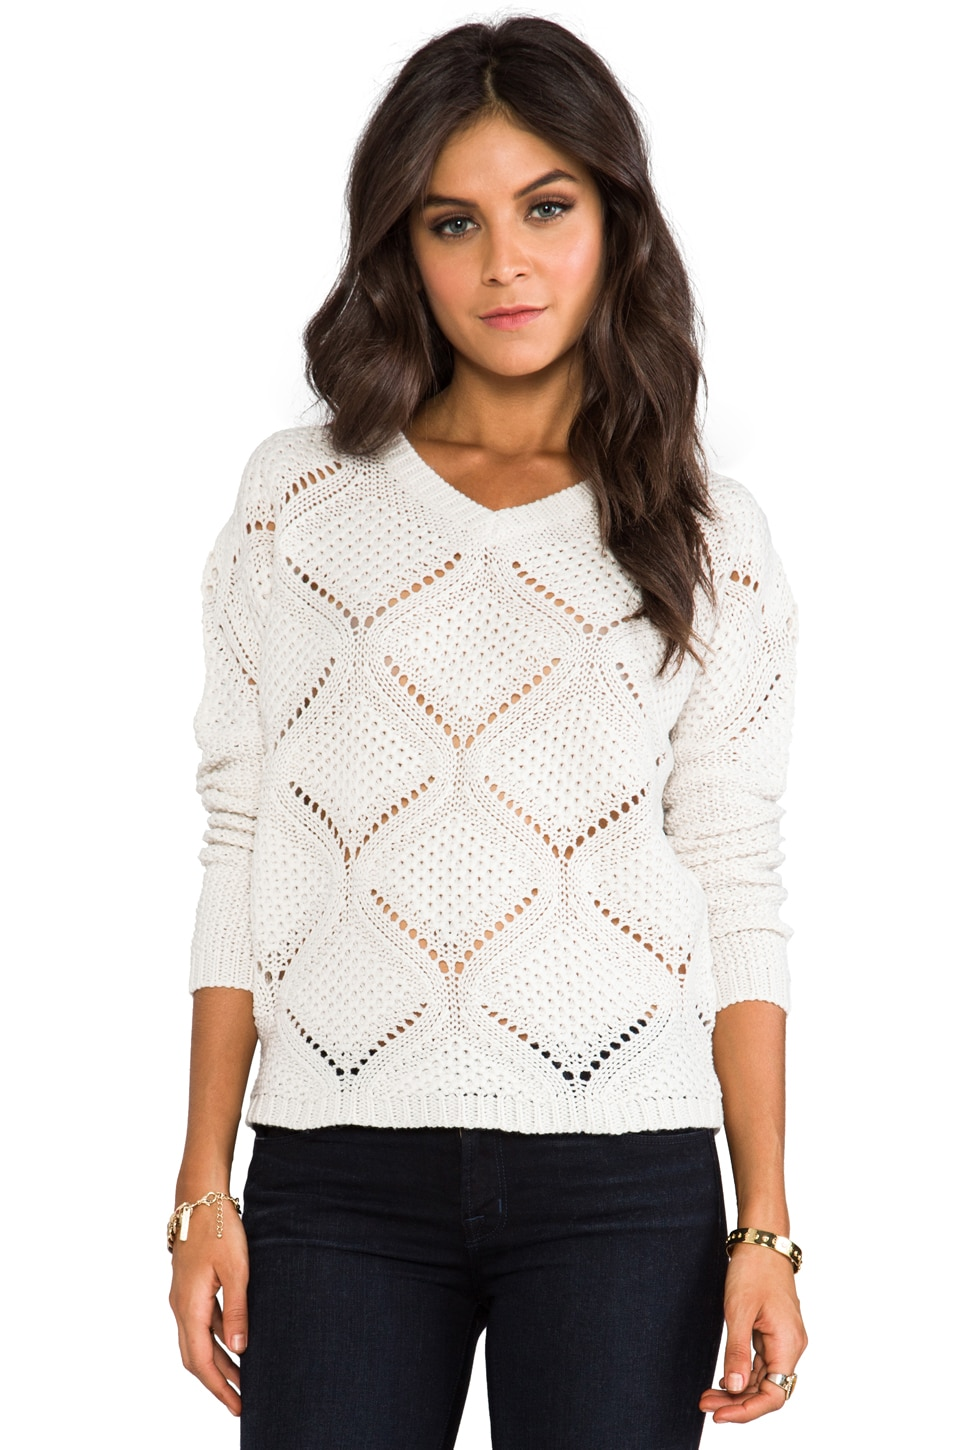 BB Dakota Cody Over Sized Cable Knit Pullover in Ivory